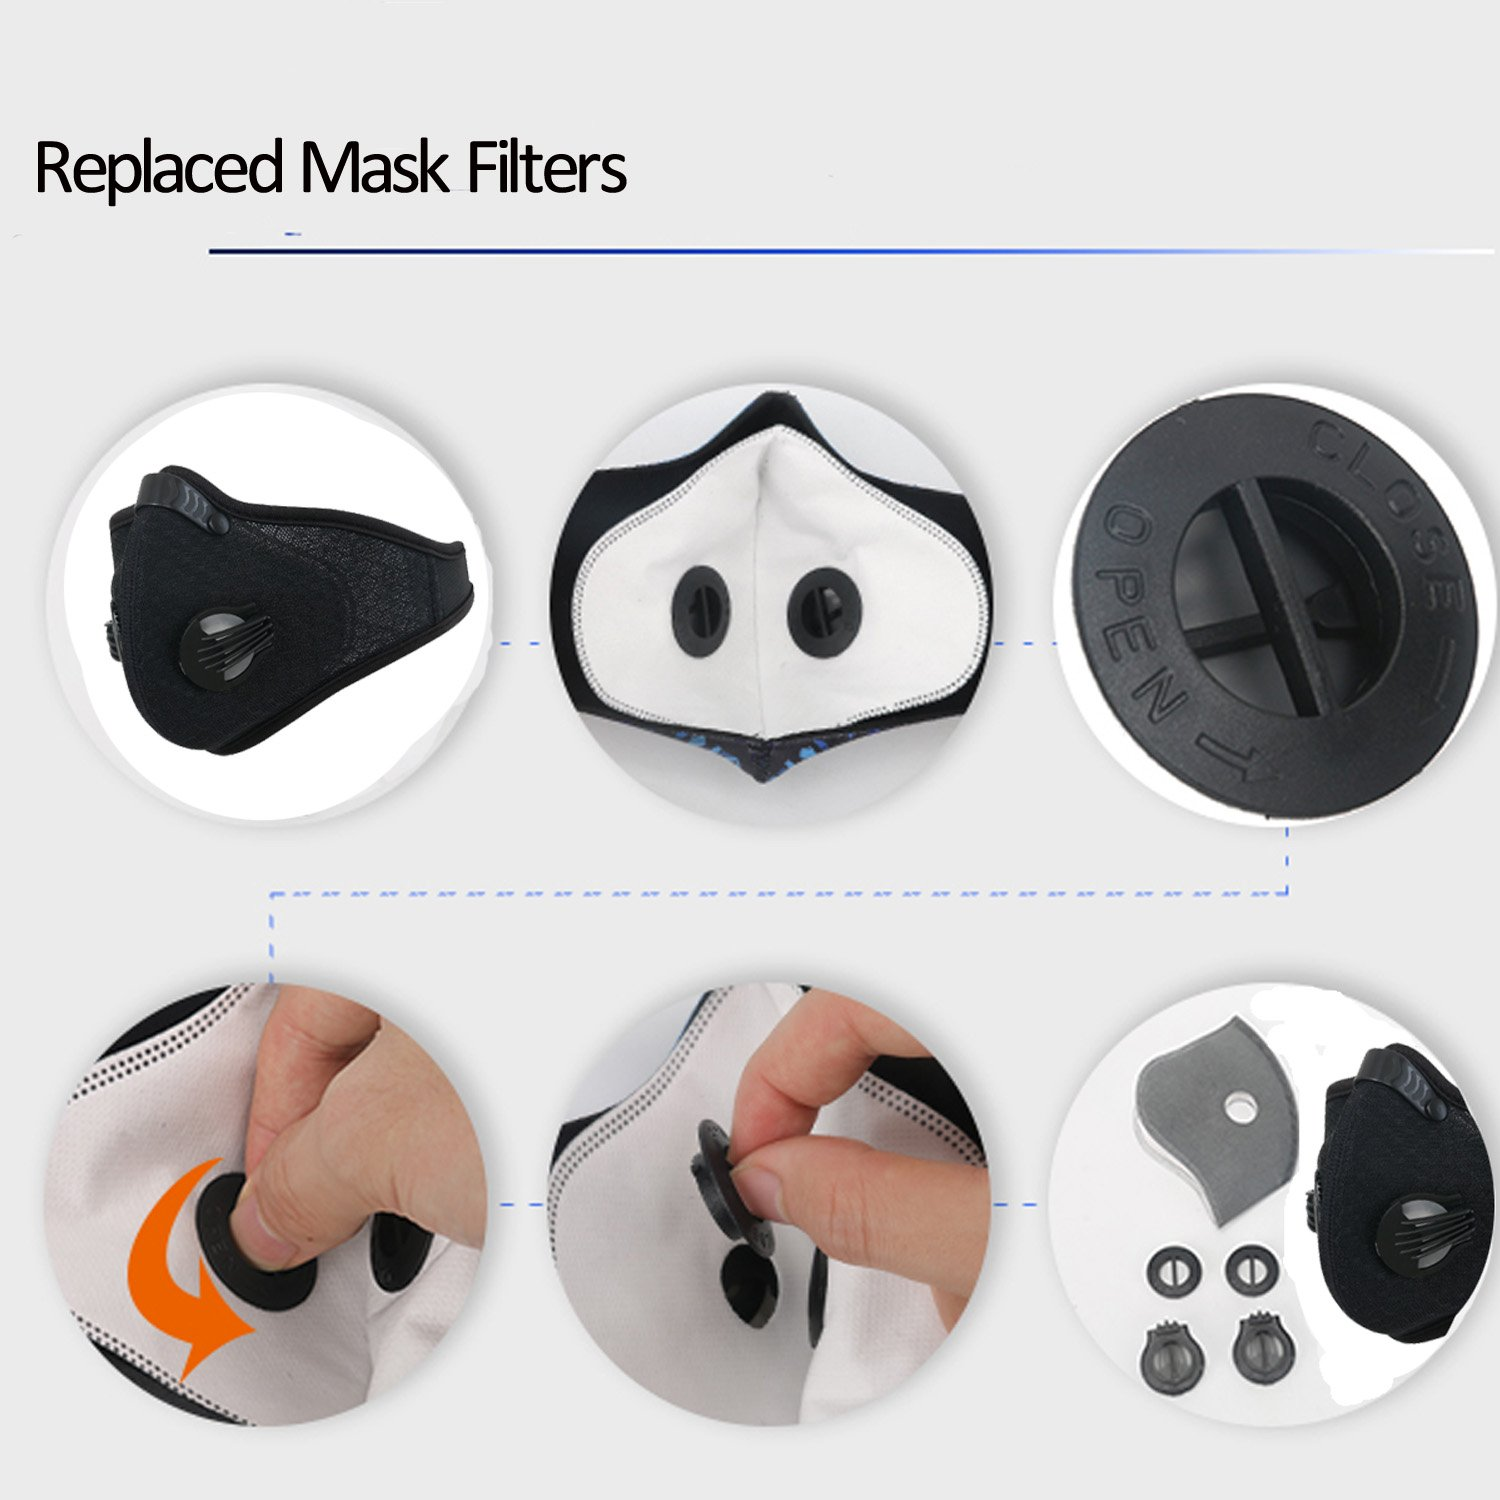 Dustproof Mask - Activated Carbon Dust Masks - with Extra Filter Cotton Sheet and Valves for Exhaust Gas, Anti Pollen Allergy, PM2.5, Running, Cycling, Outdoor Activities (2 Pack Black+Black, Type 1) by Infityle (Image #4)